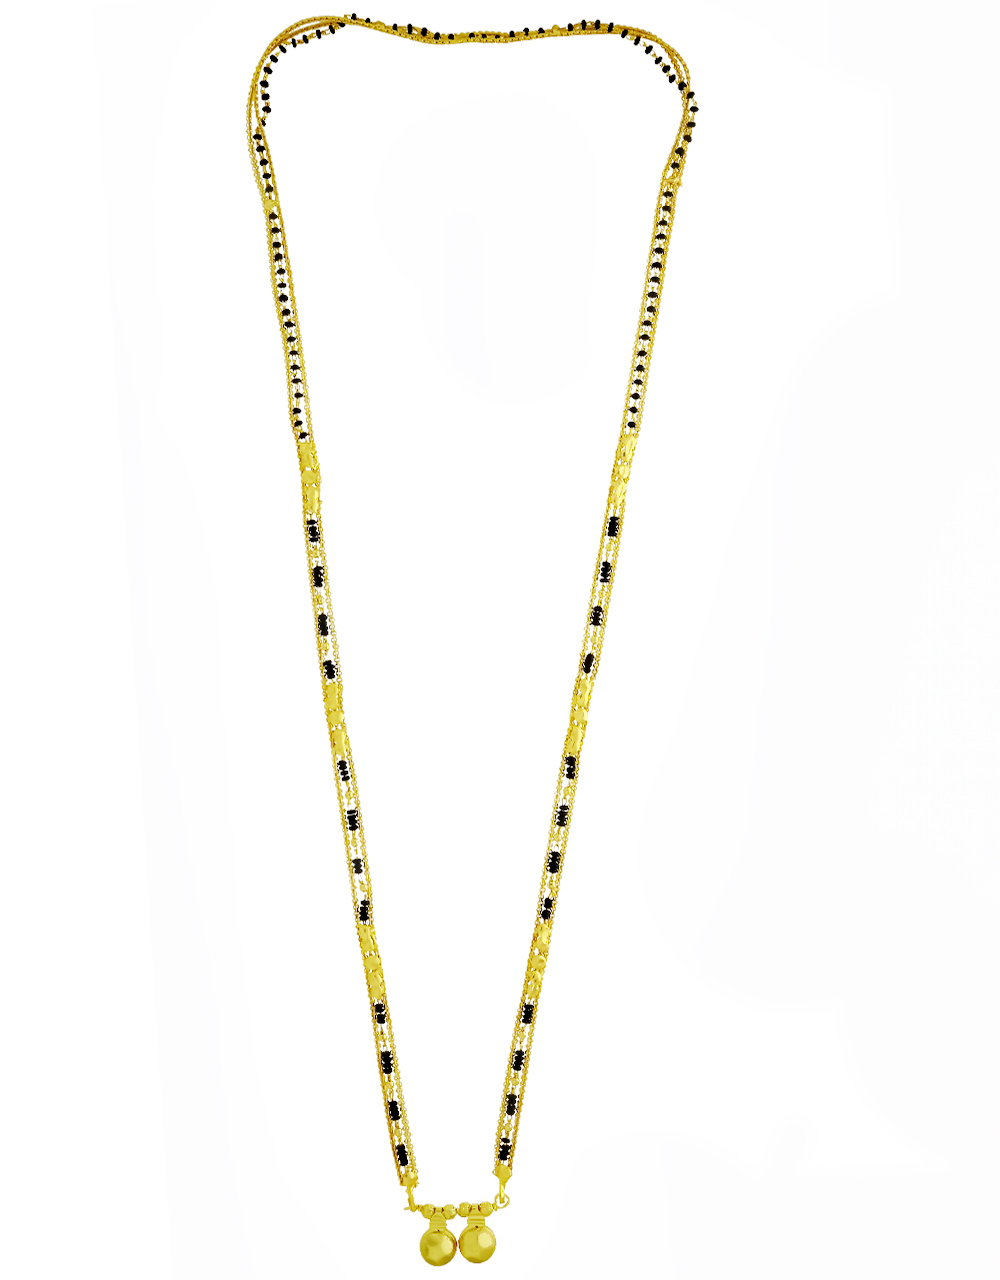 Gold Plated Adorable Wati Mangalsutra for Women at Best Price